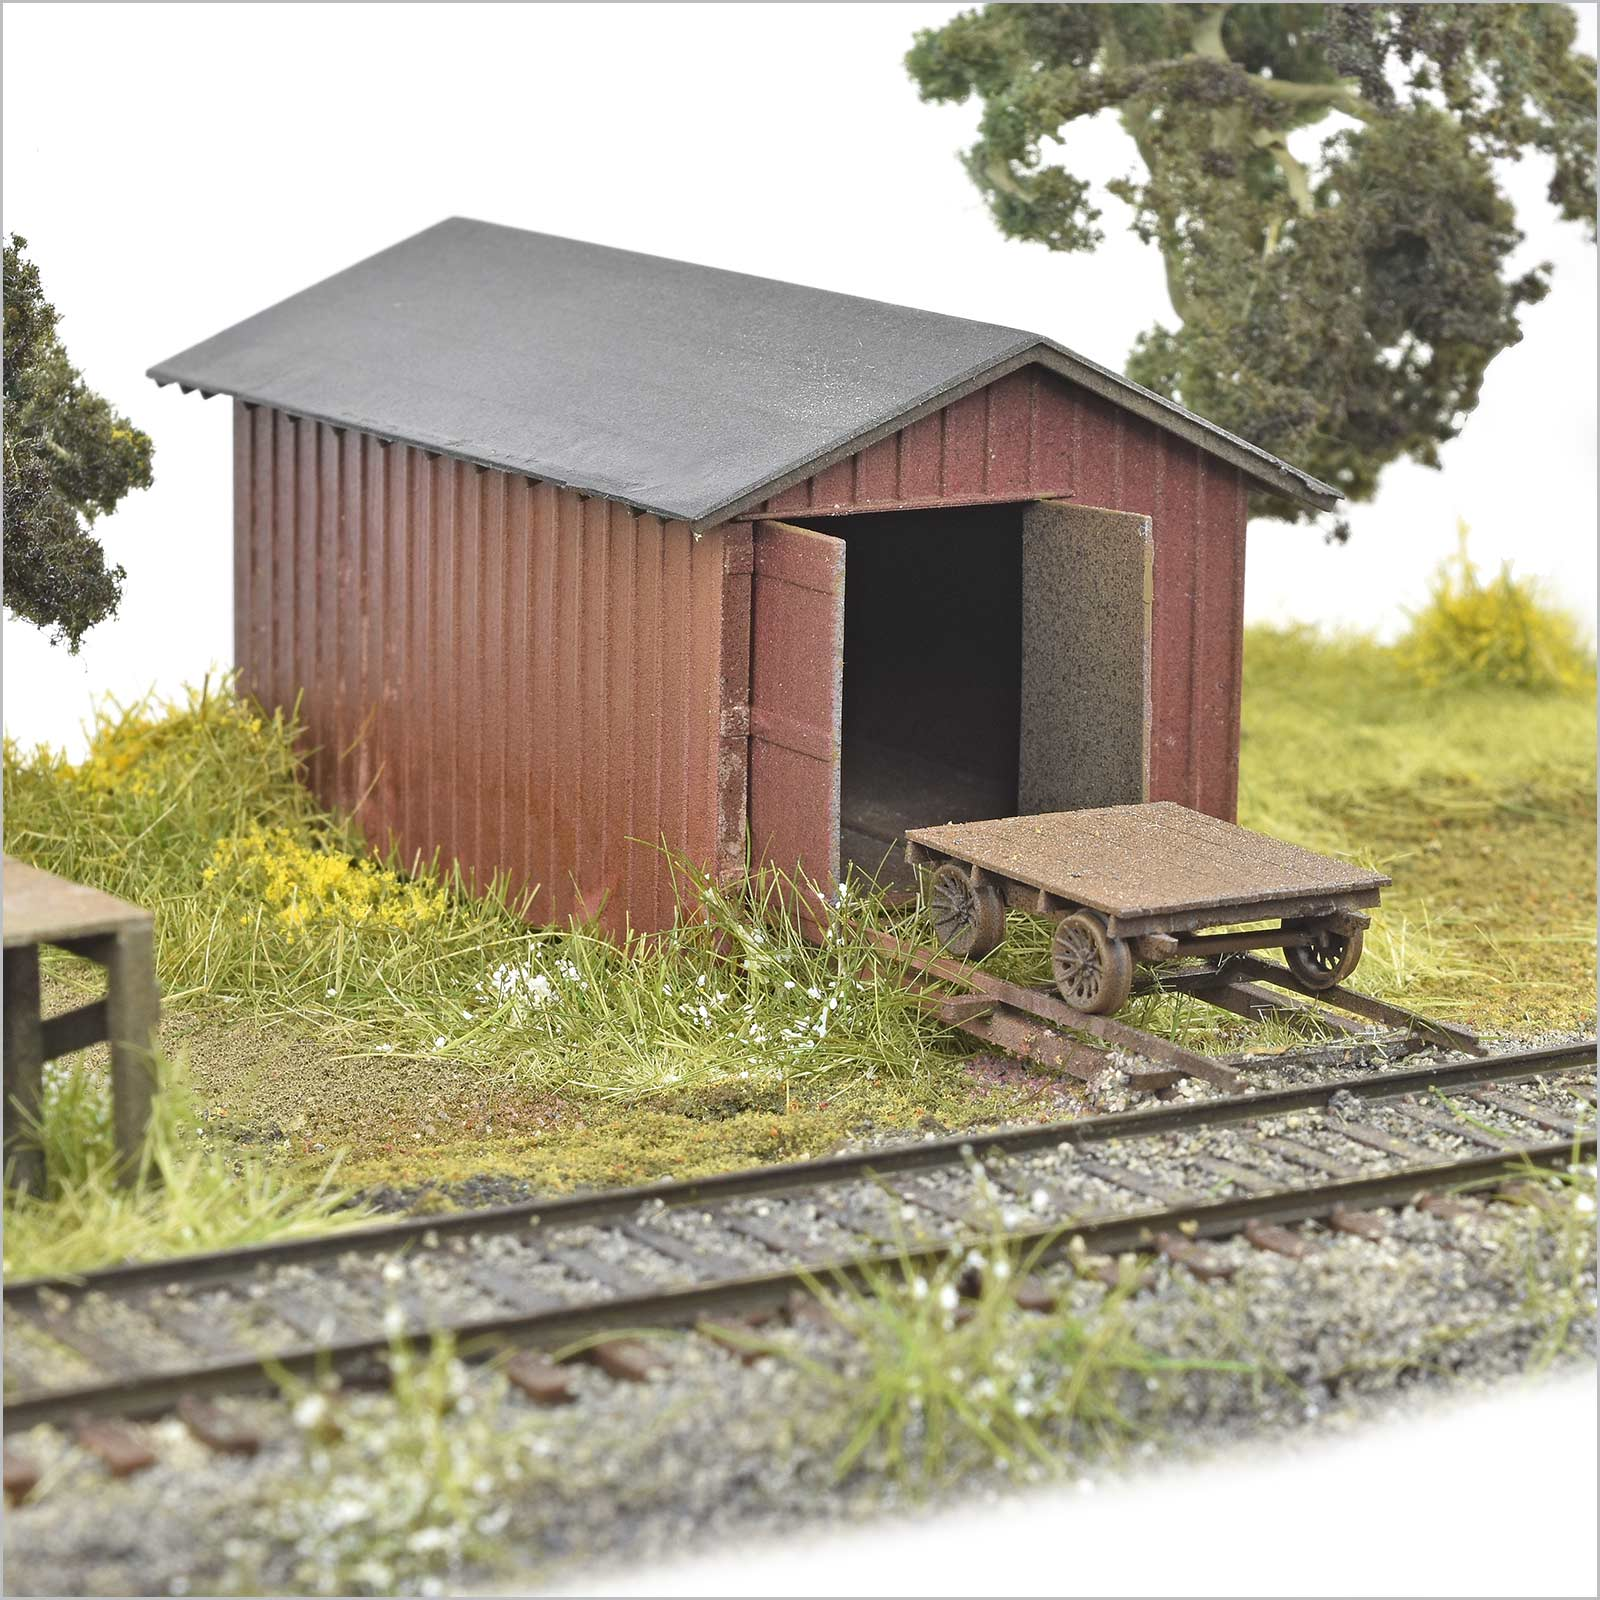 HO Handcar Shed and Handcar kit